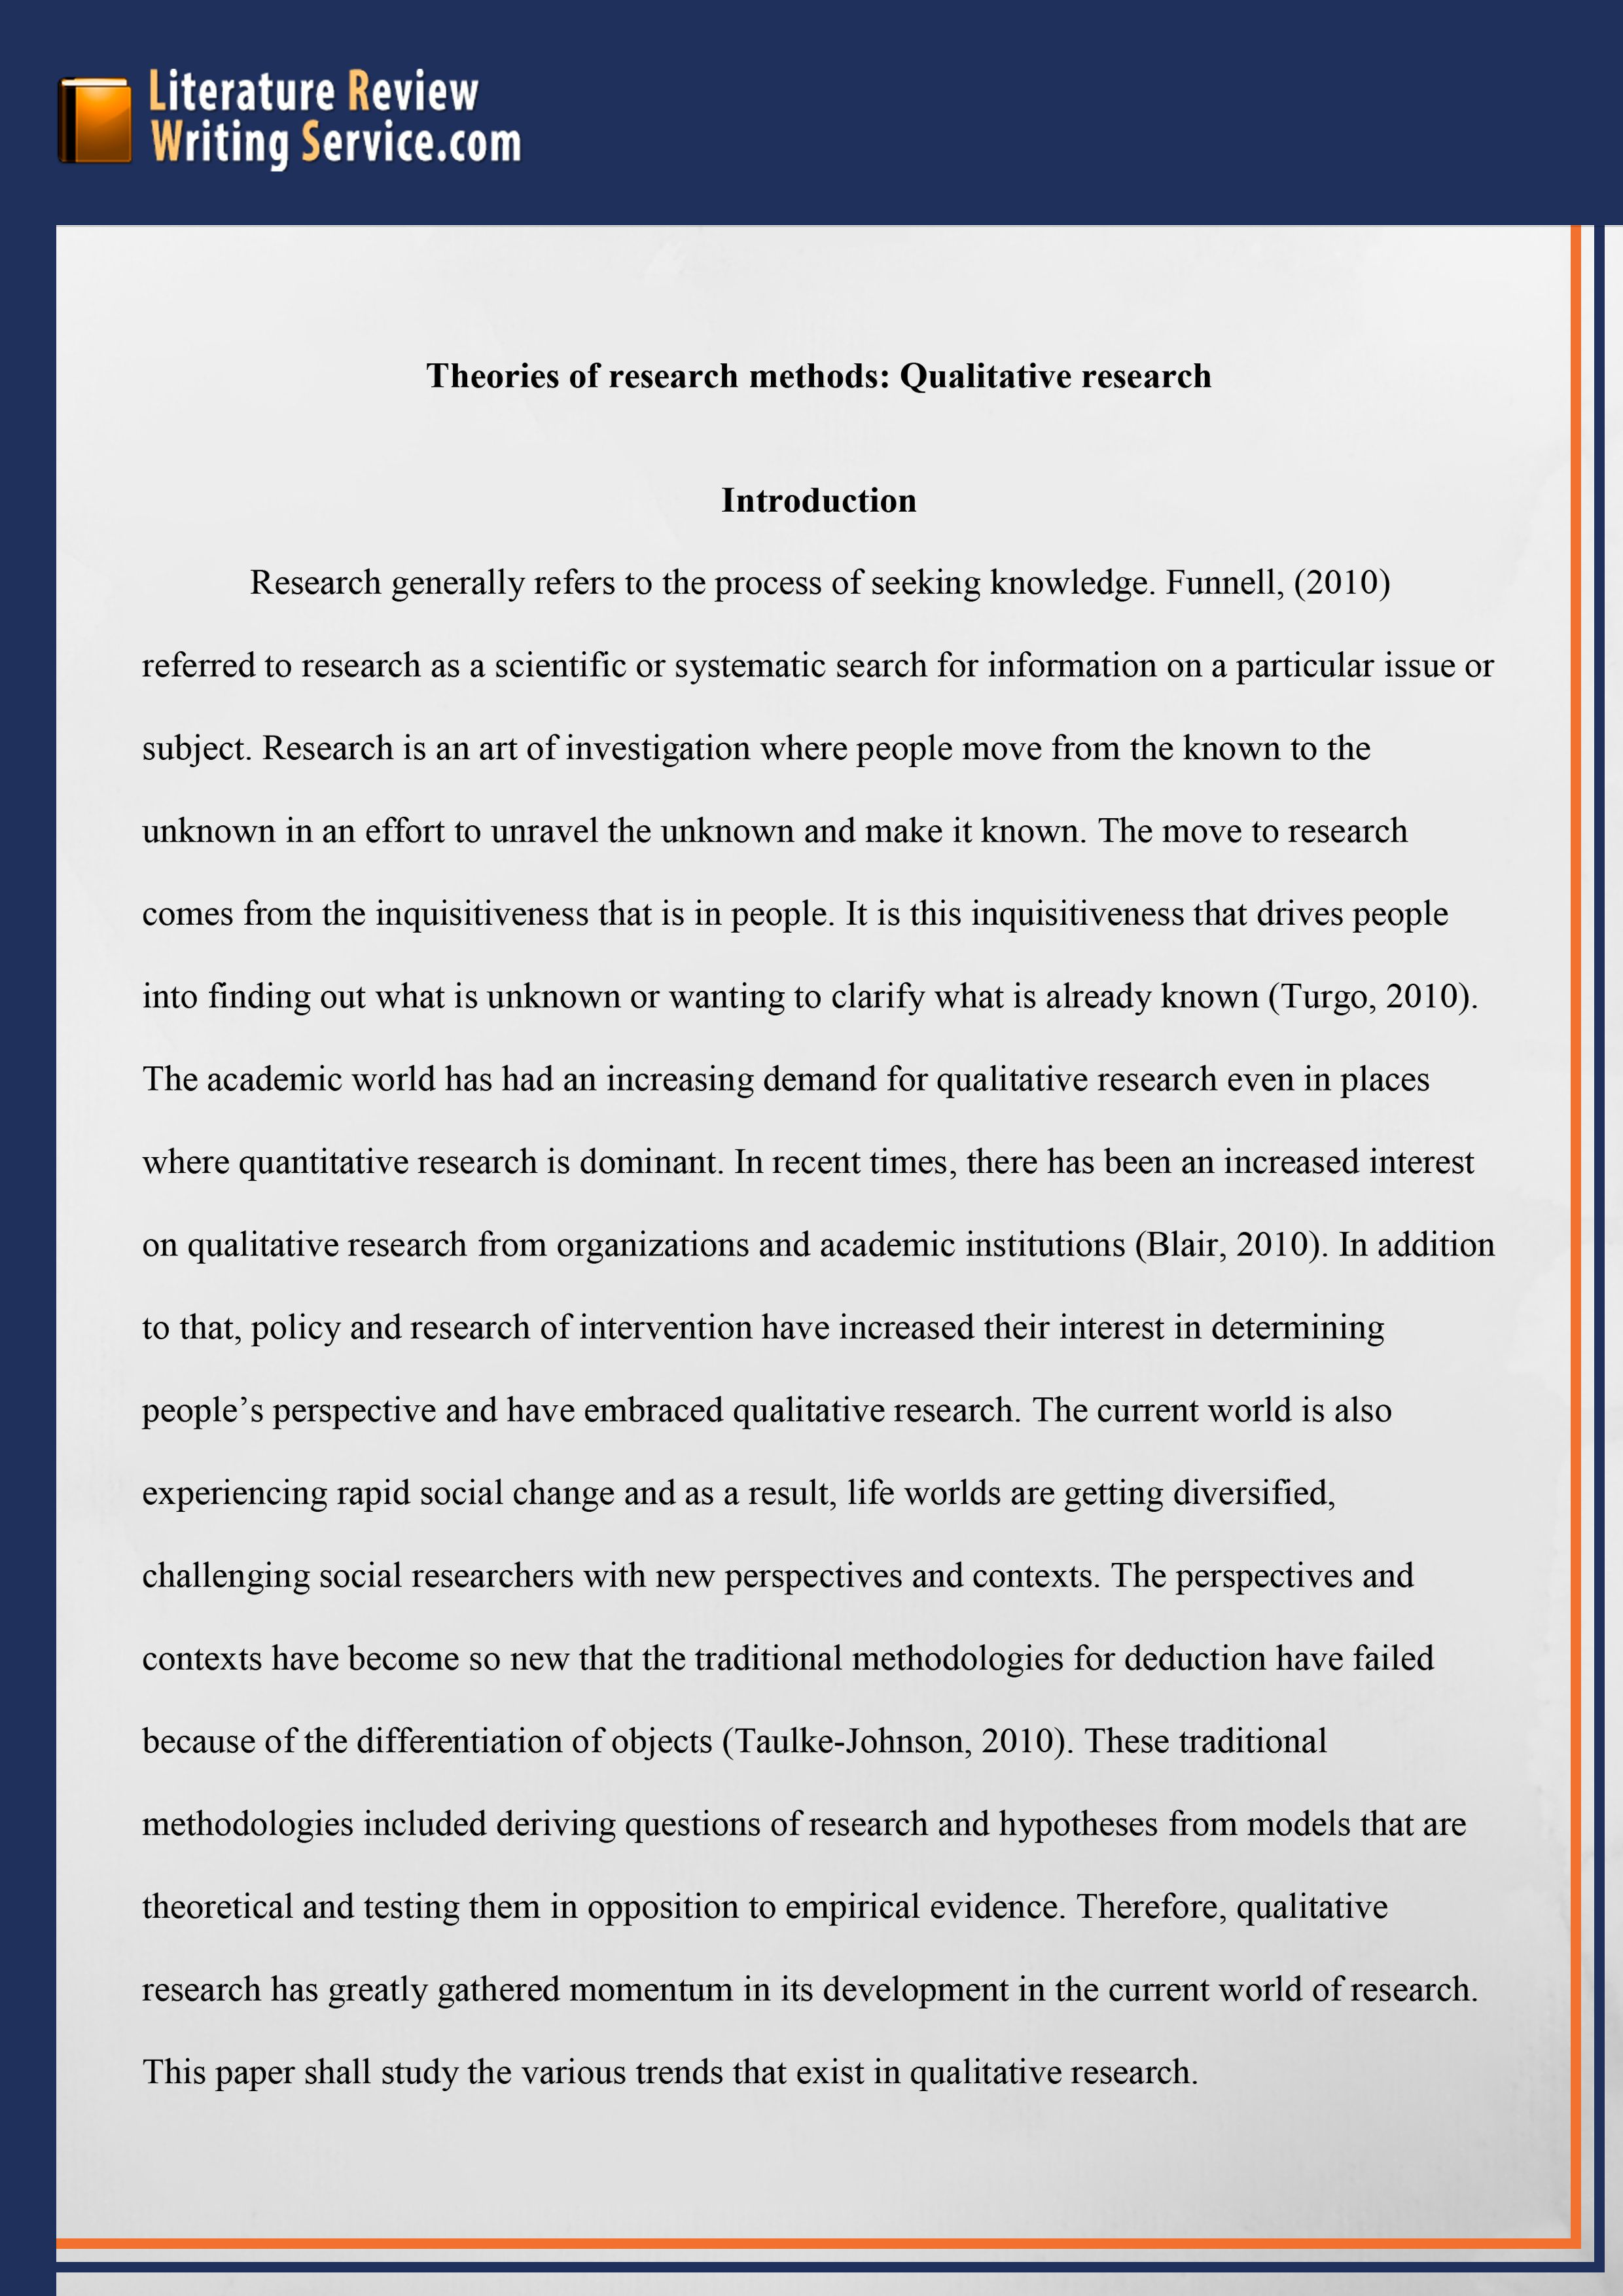 003 Psychology Literature Review Paper Example Wondrous Full